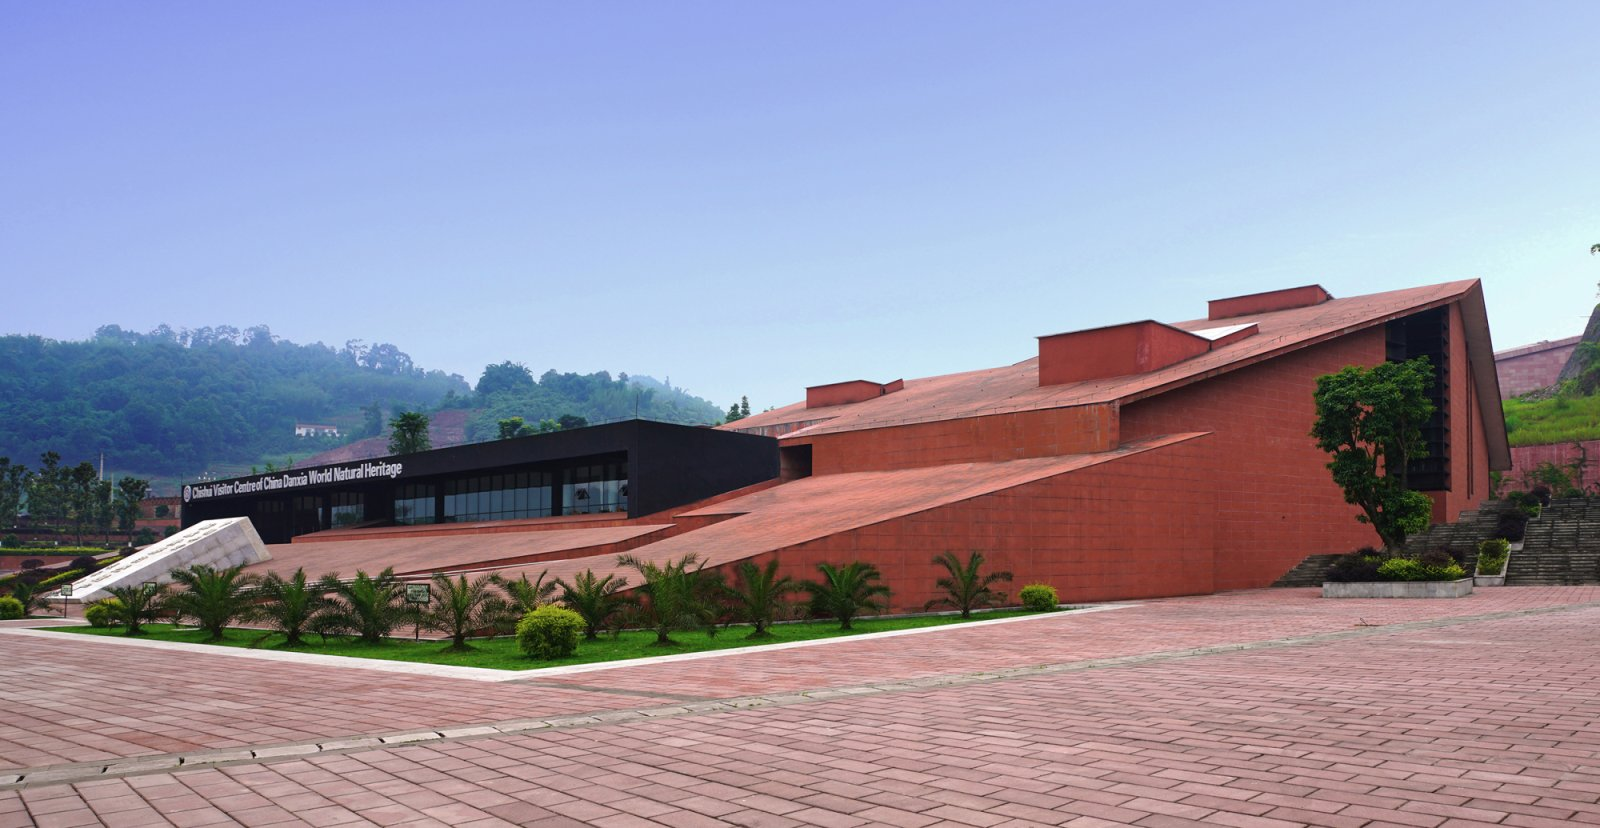 Danxia Exhibition Center